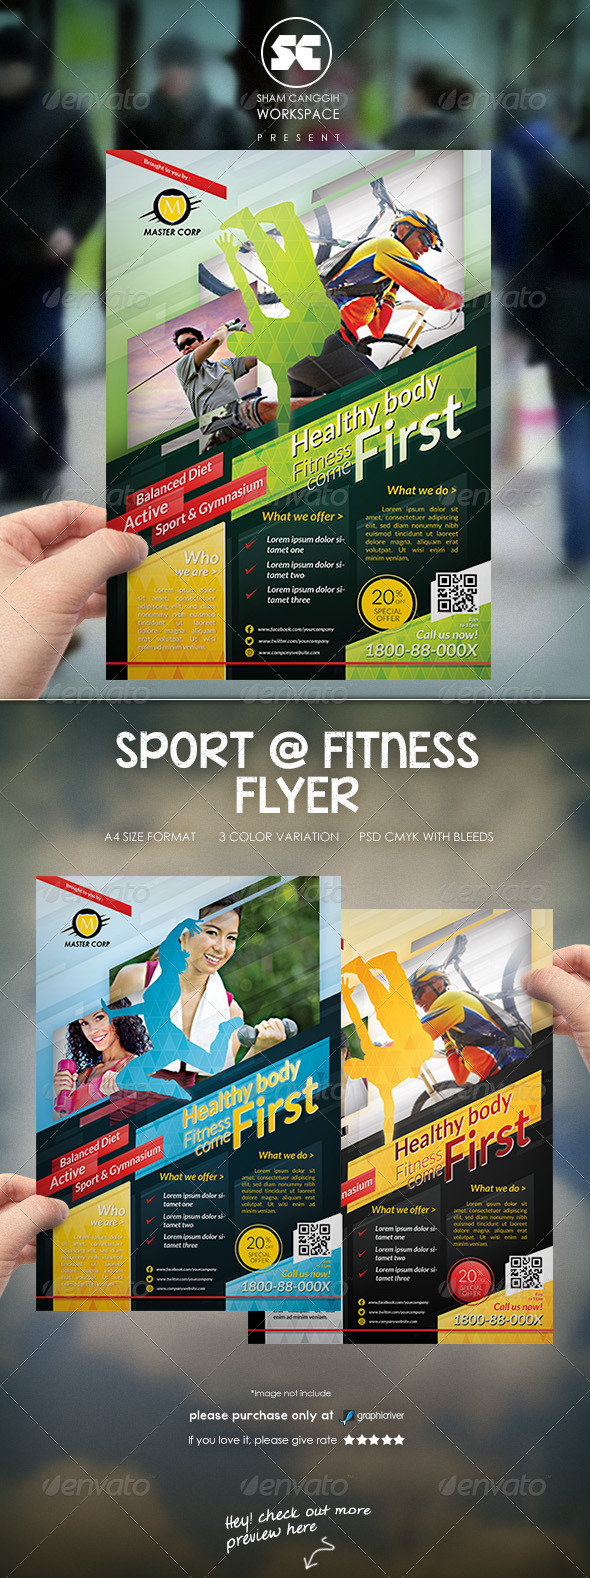 Sports & Fitness Flyer/Magazine Ads